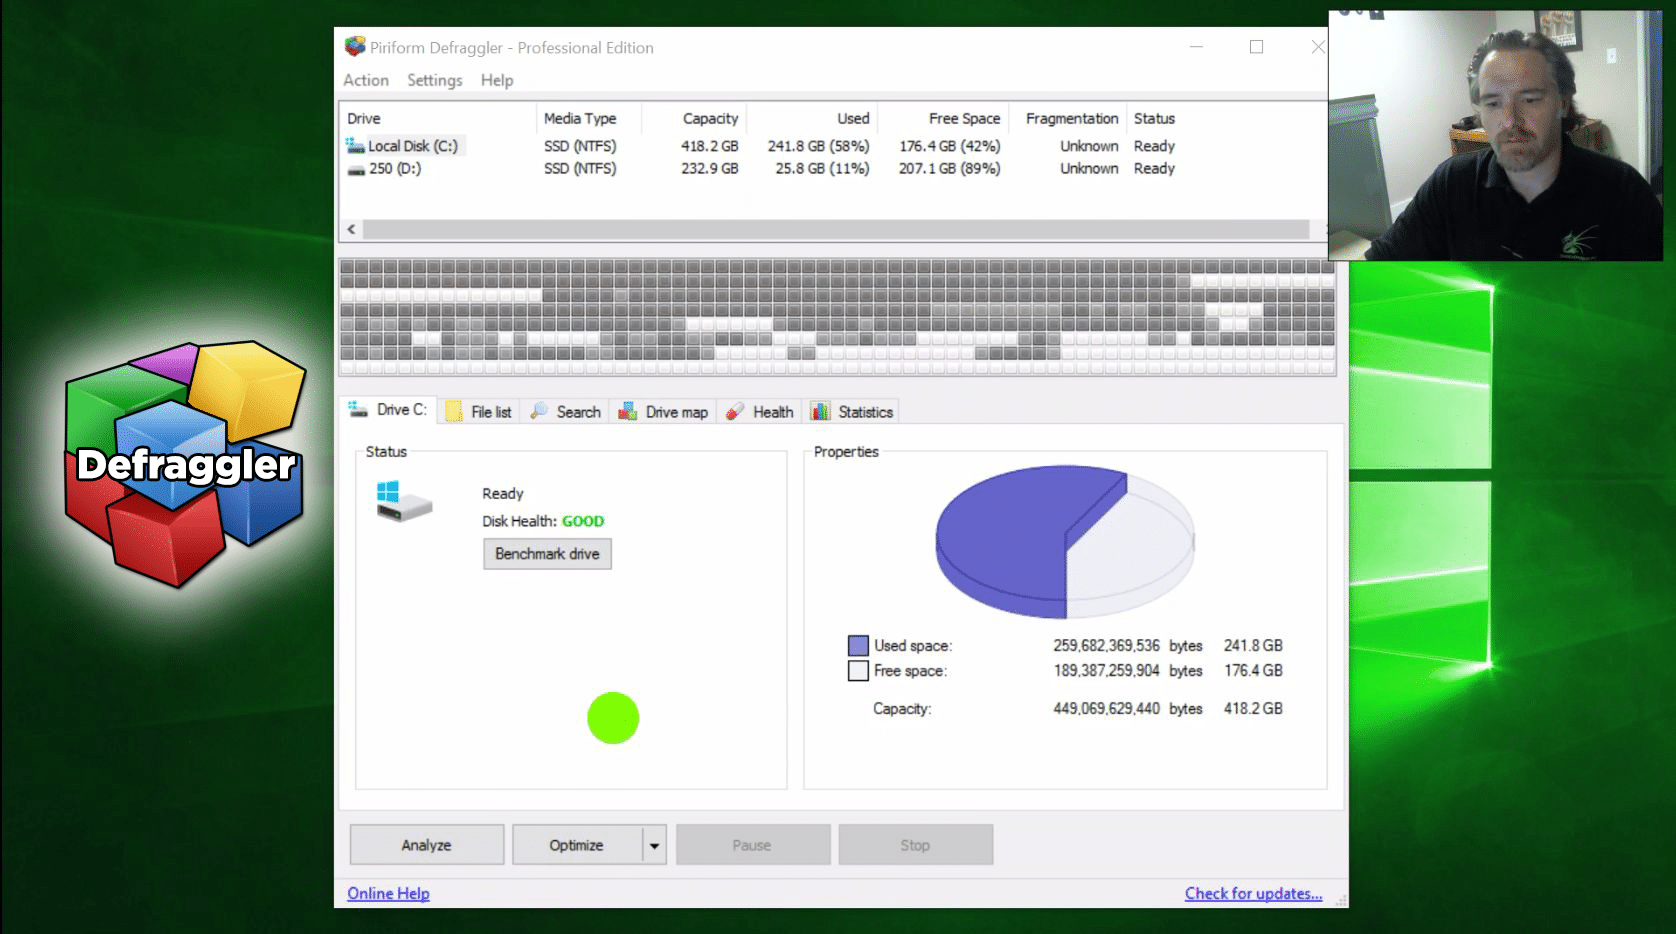 How to Defragment Your Computer using Defraggler